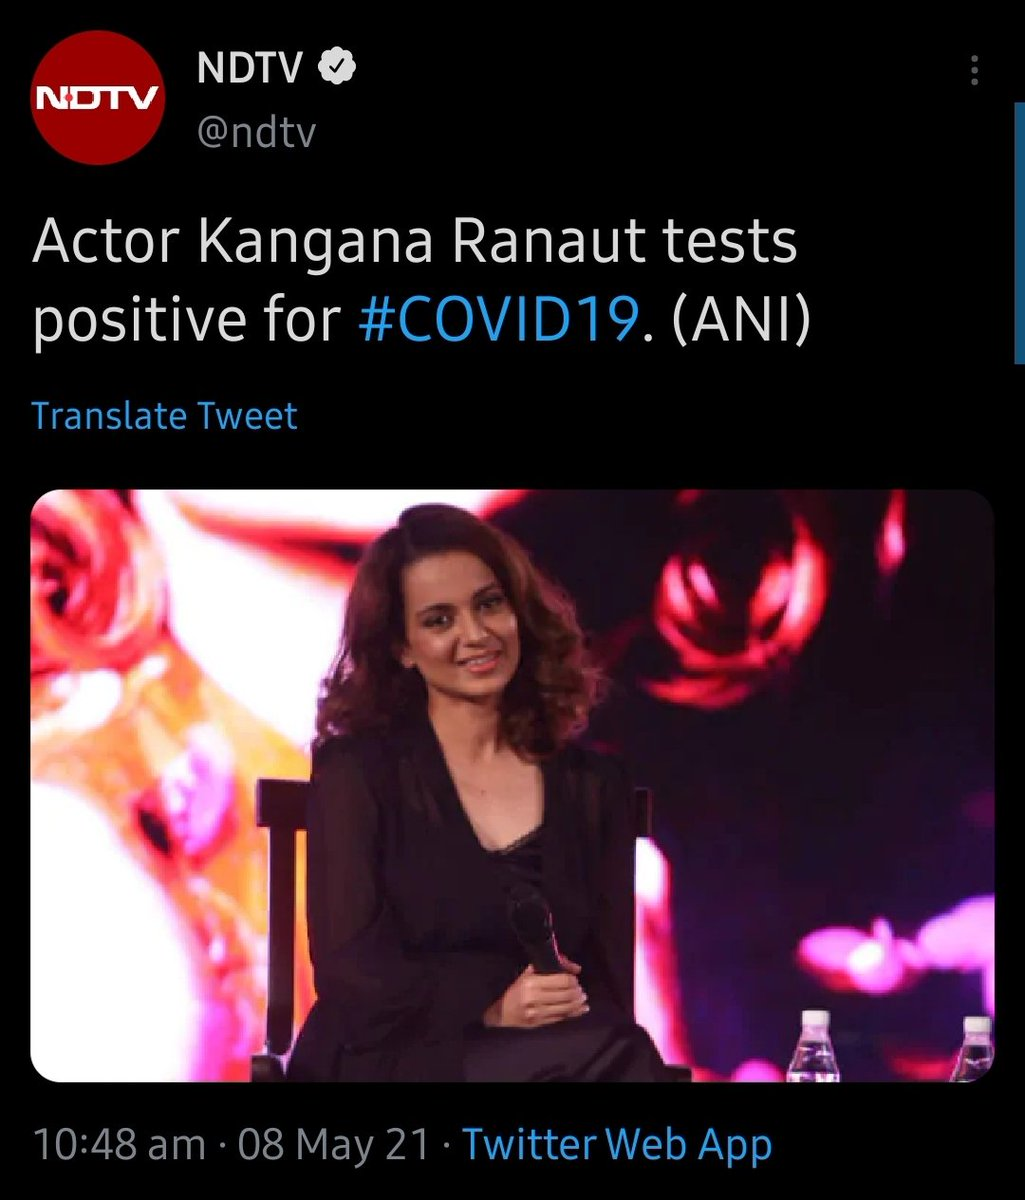 I want her to be treated by Baba Ramdev. If she's a true nationalist she'll beat Corona with Ayurveda 🚩🚩🚩🚩🚩 https://t.co/fX2bEwDDB0